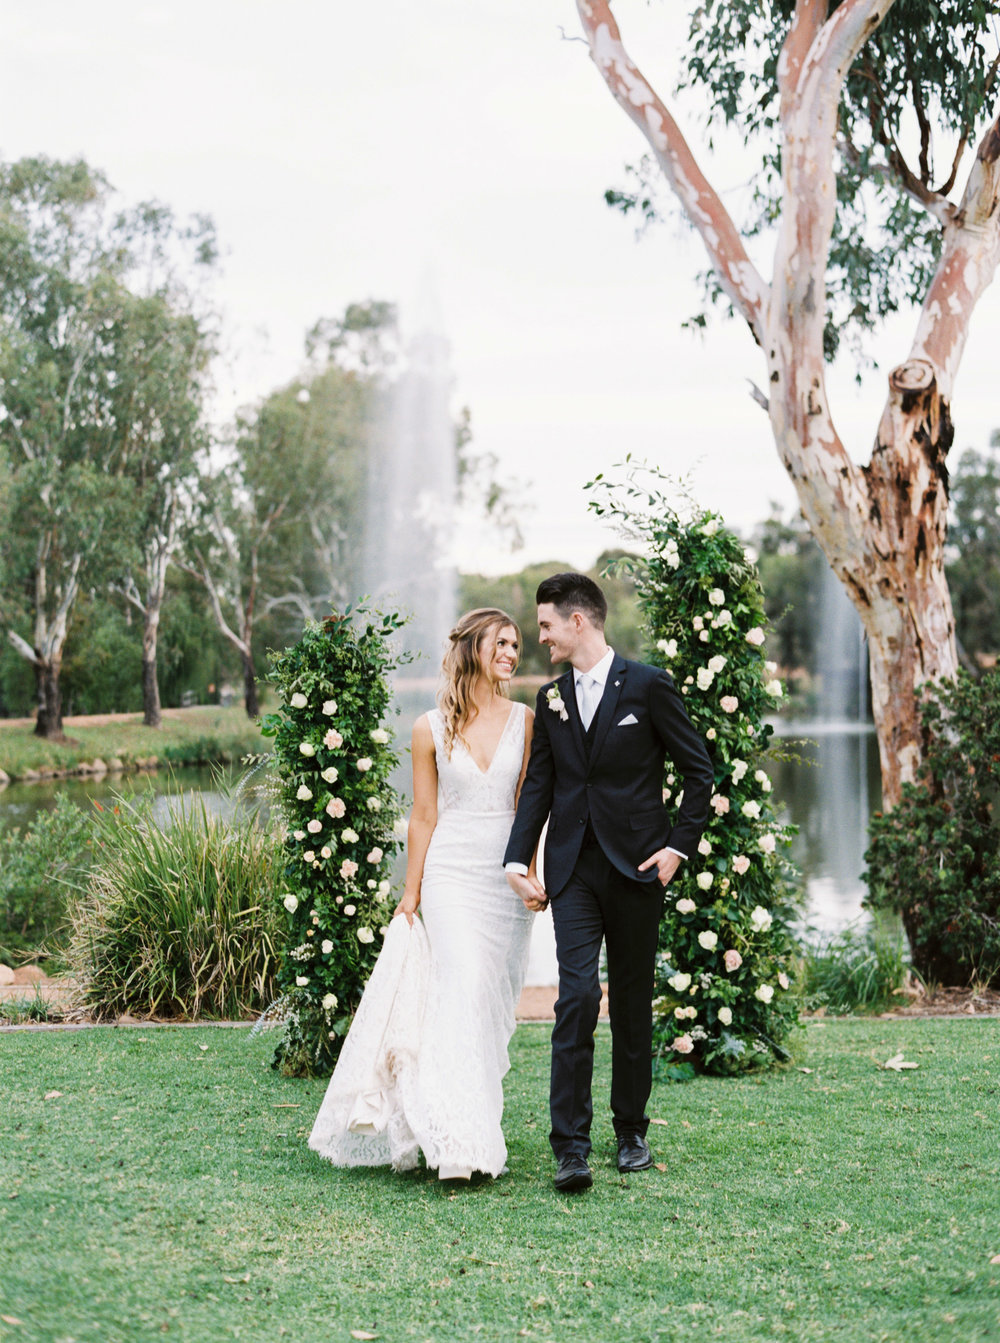 00008- Newcastle NSW Hunter Valley Wedding Photographer Sheri McMahon.jpg